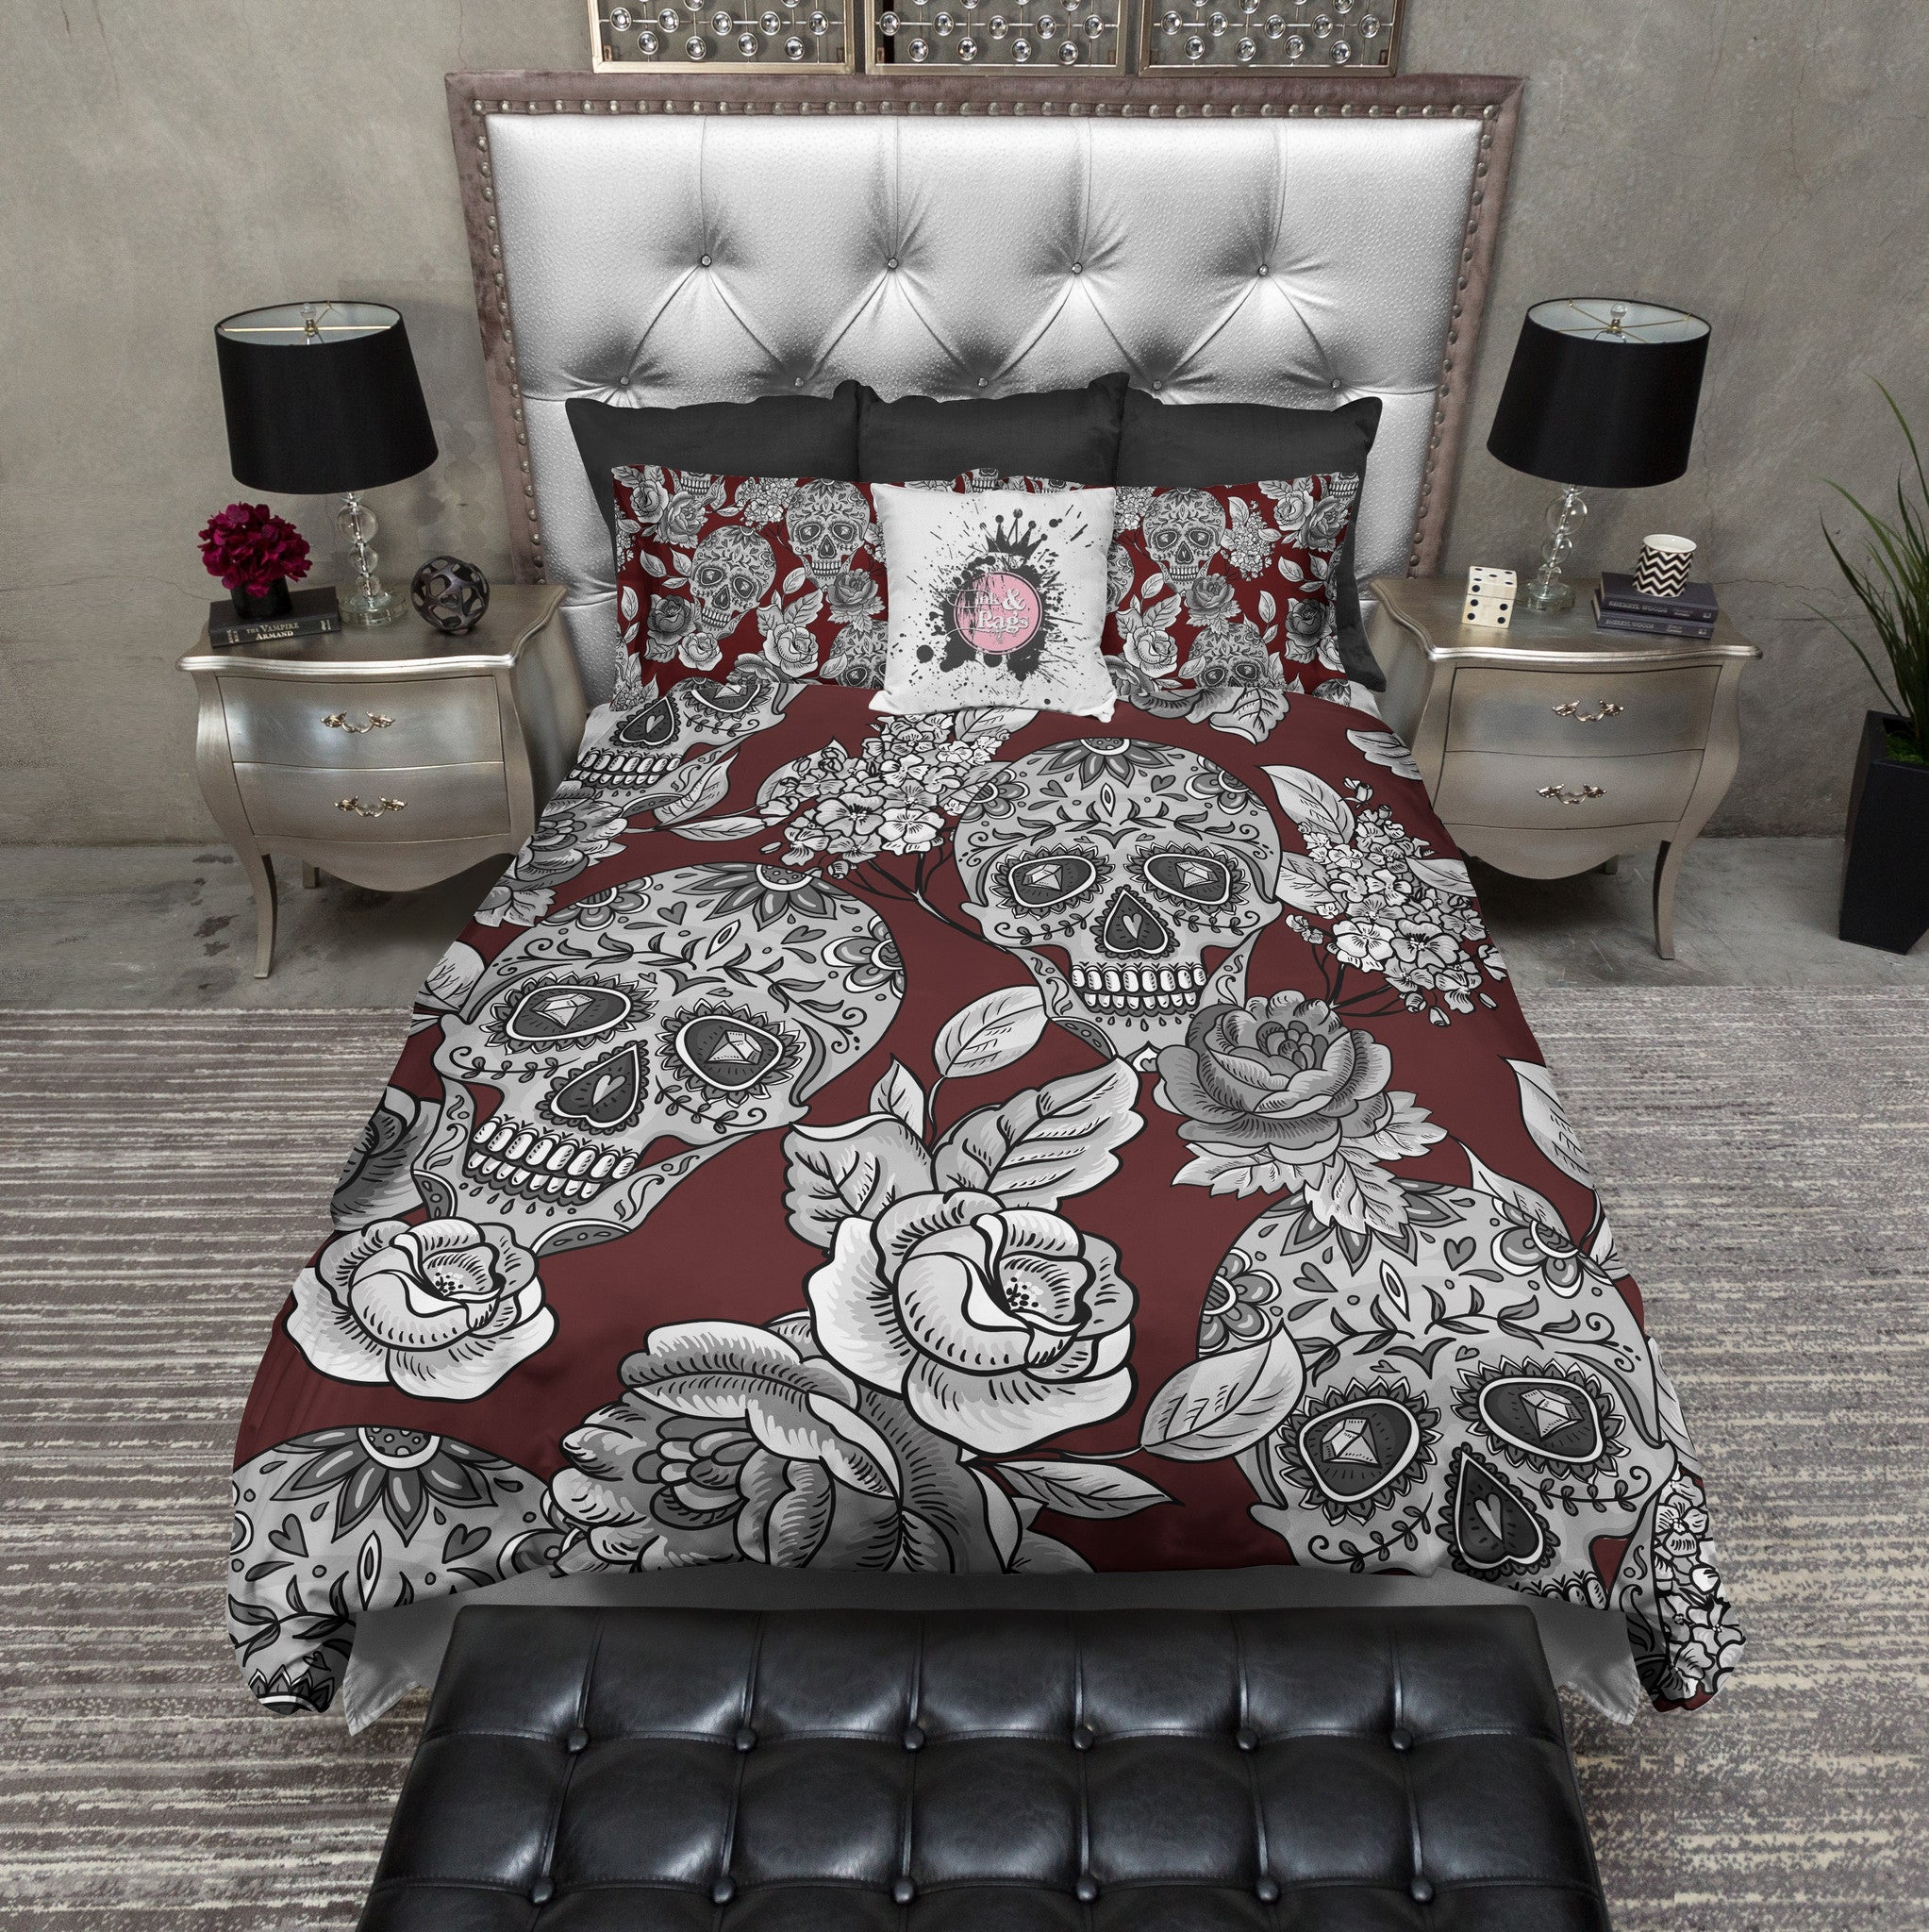 Signature Oxblood Red Sugar Skull And Rose Bedding Ink